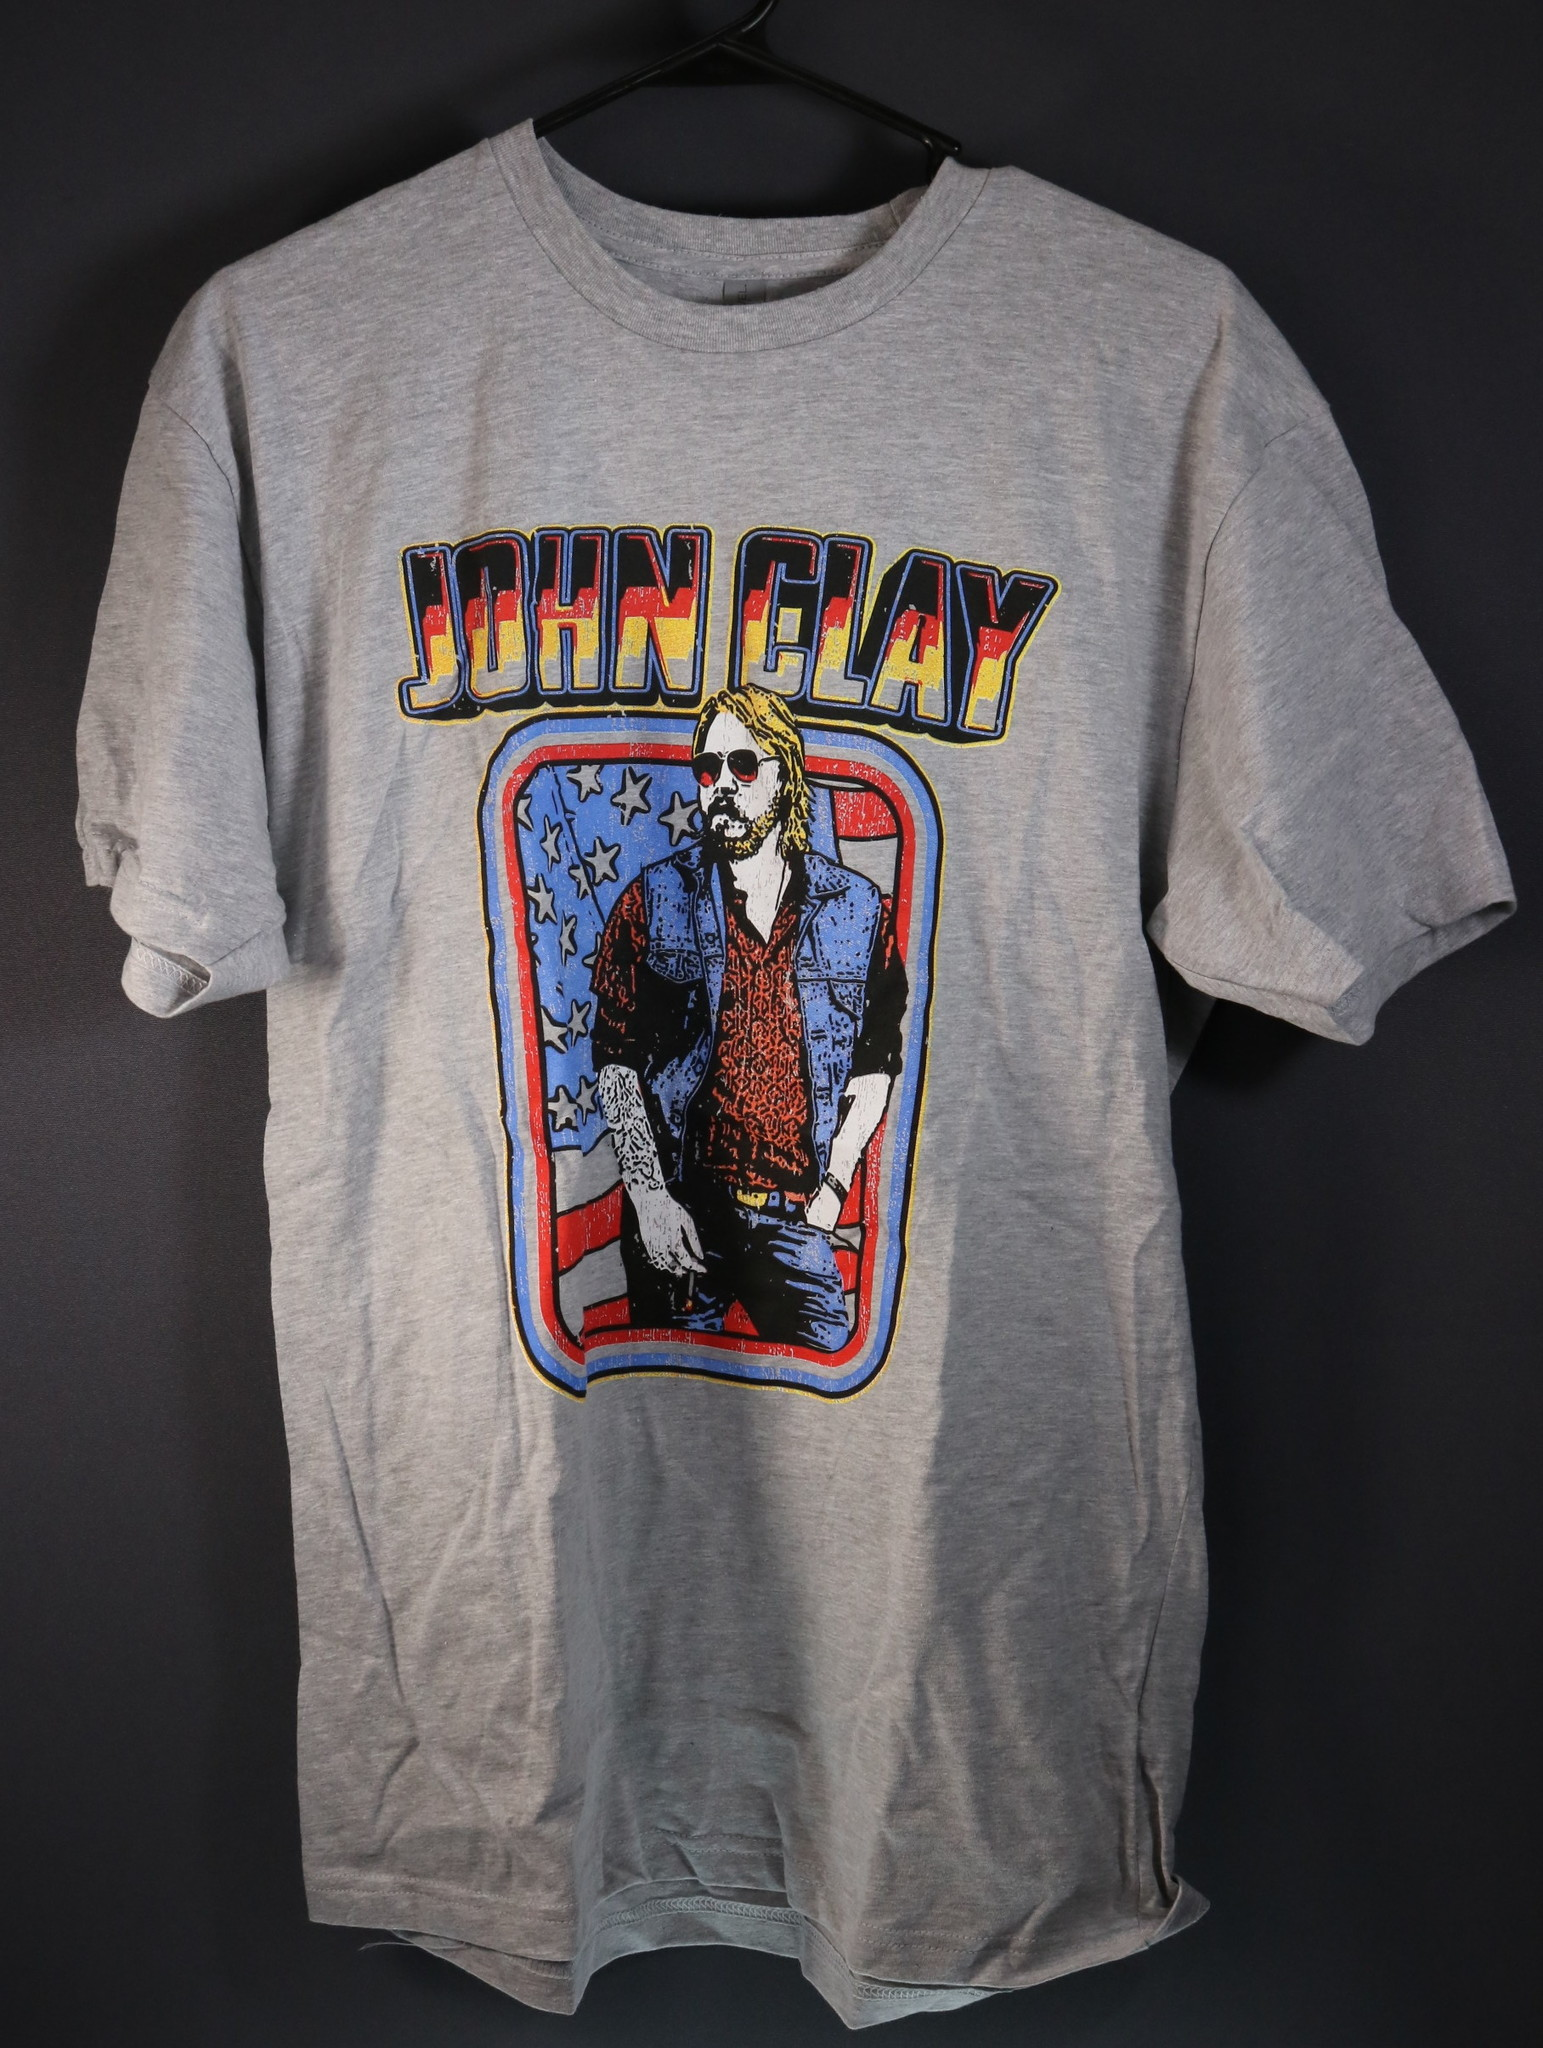 Local Music NEW John Clay T-Shirt - XL